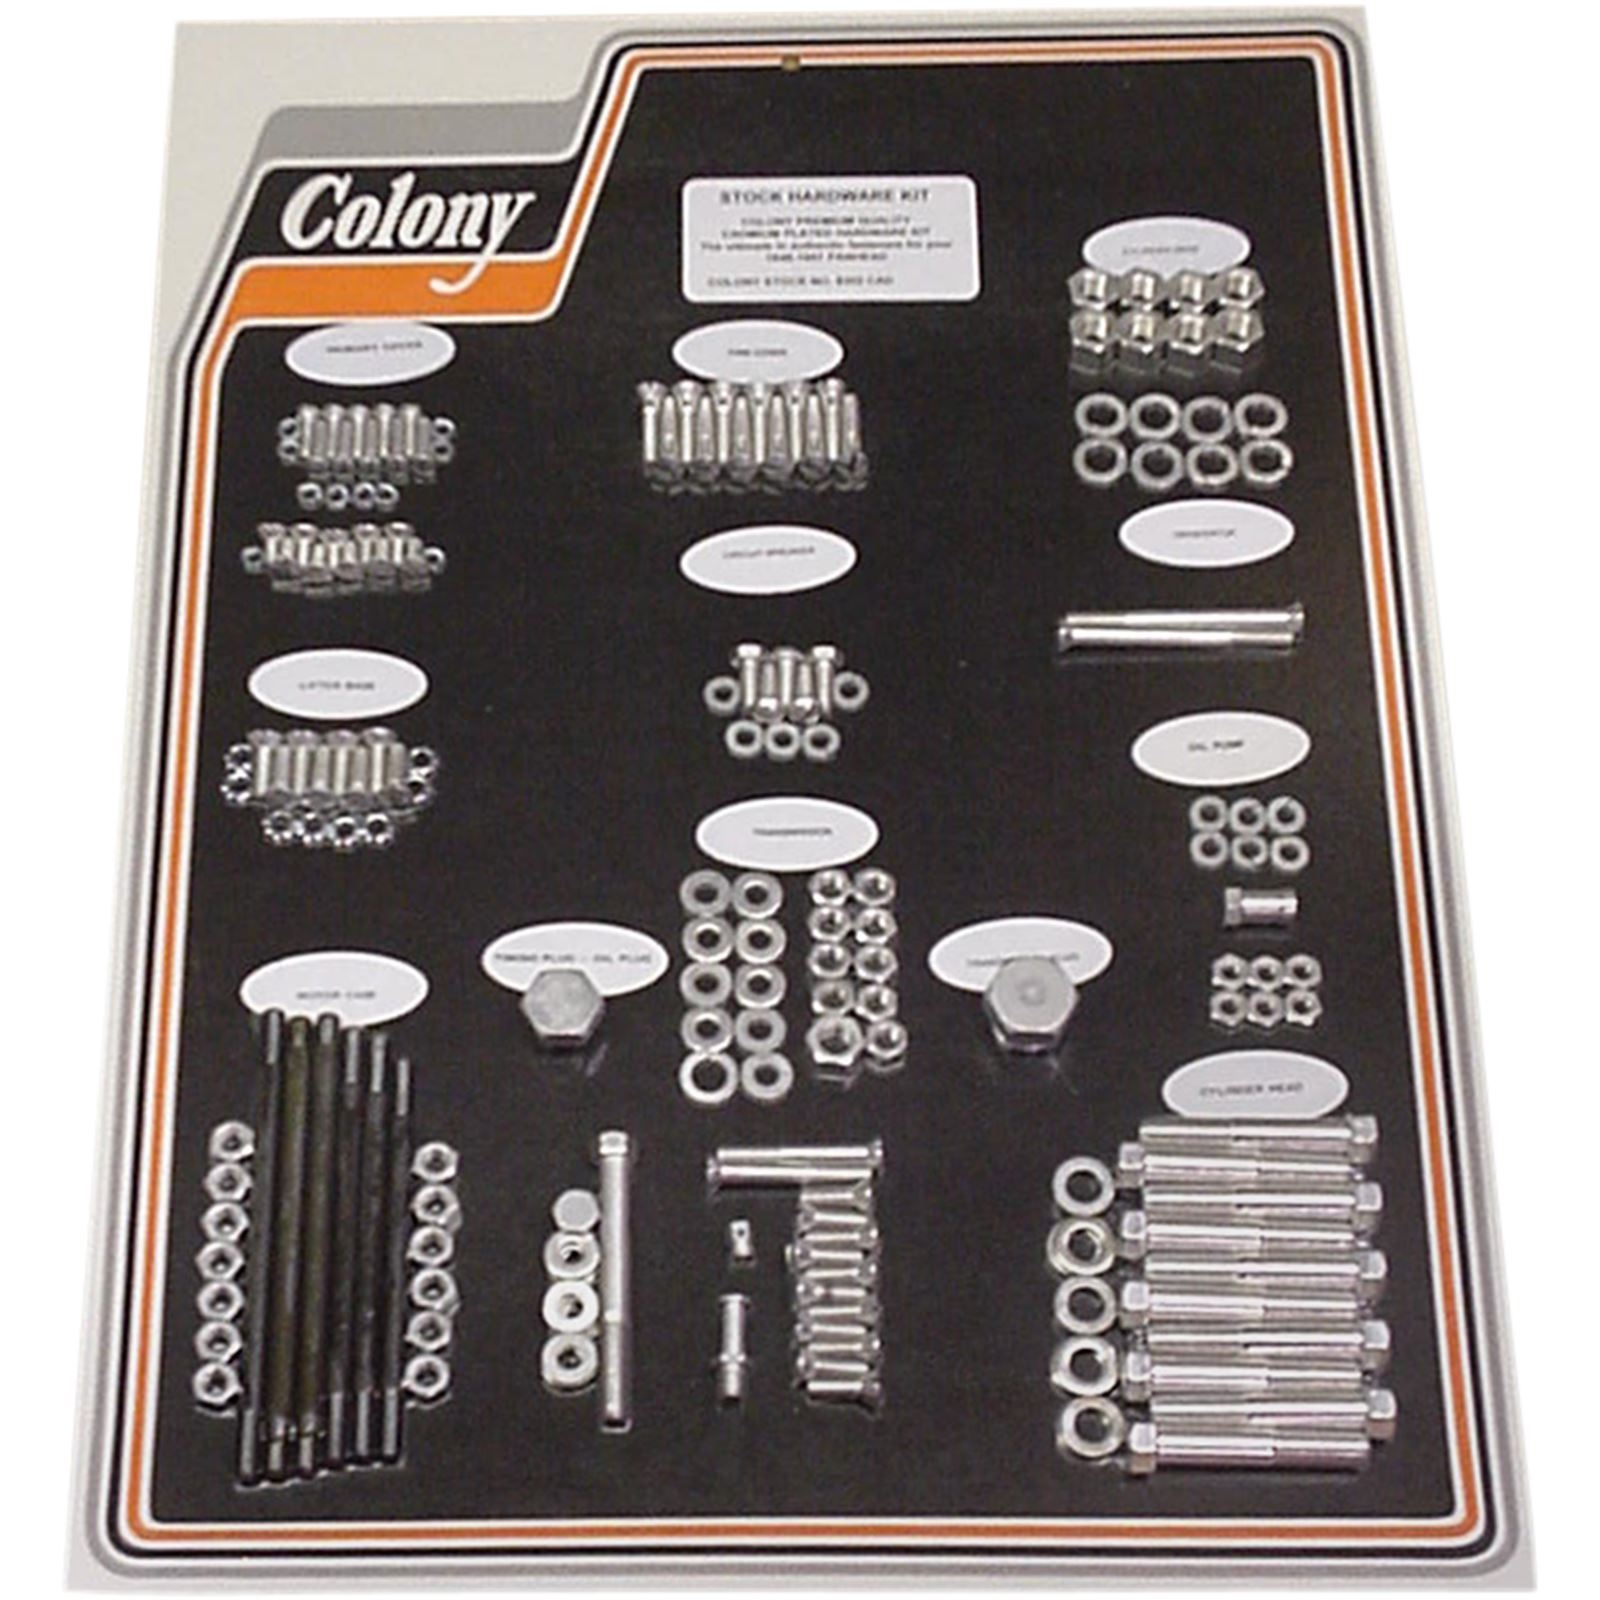 Colony Machine Kit Hardware 48-57 Cadmium